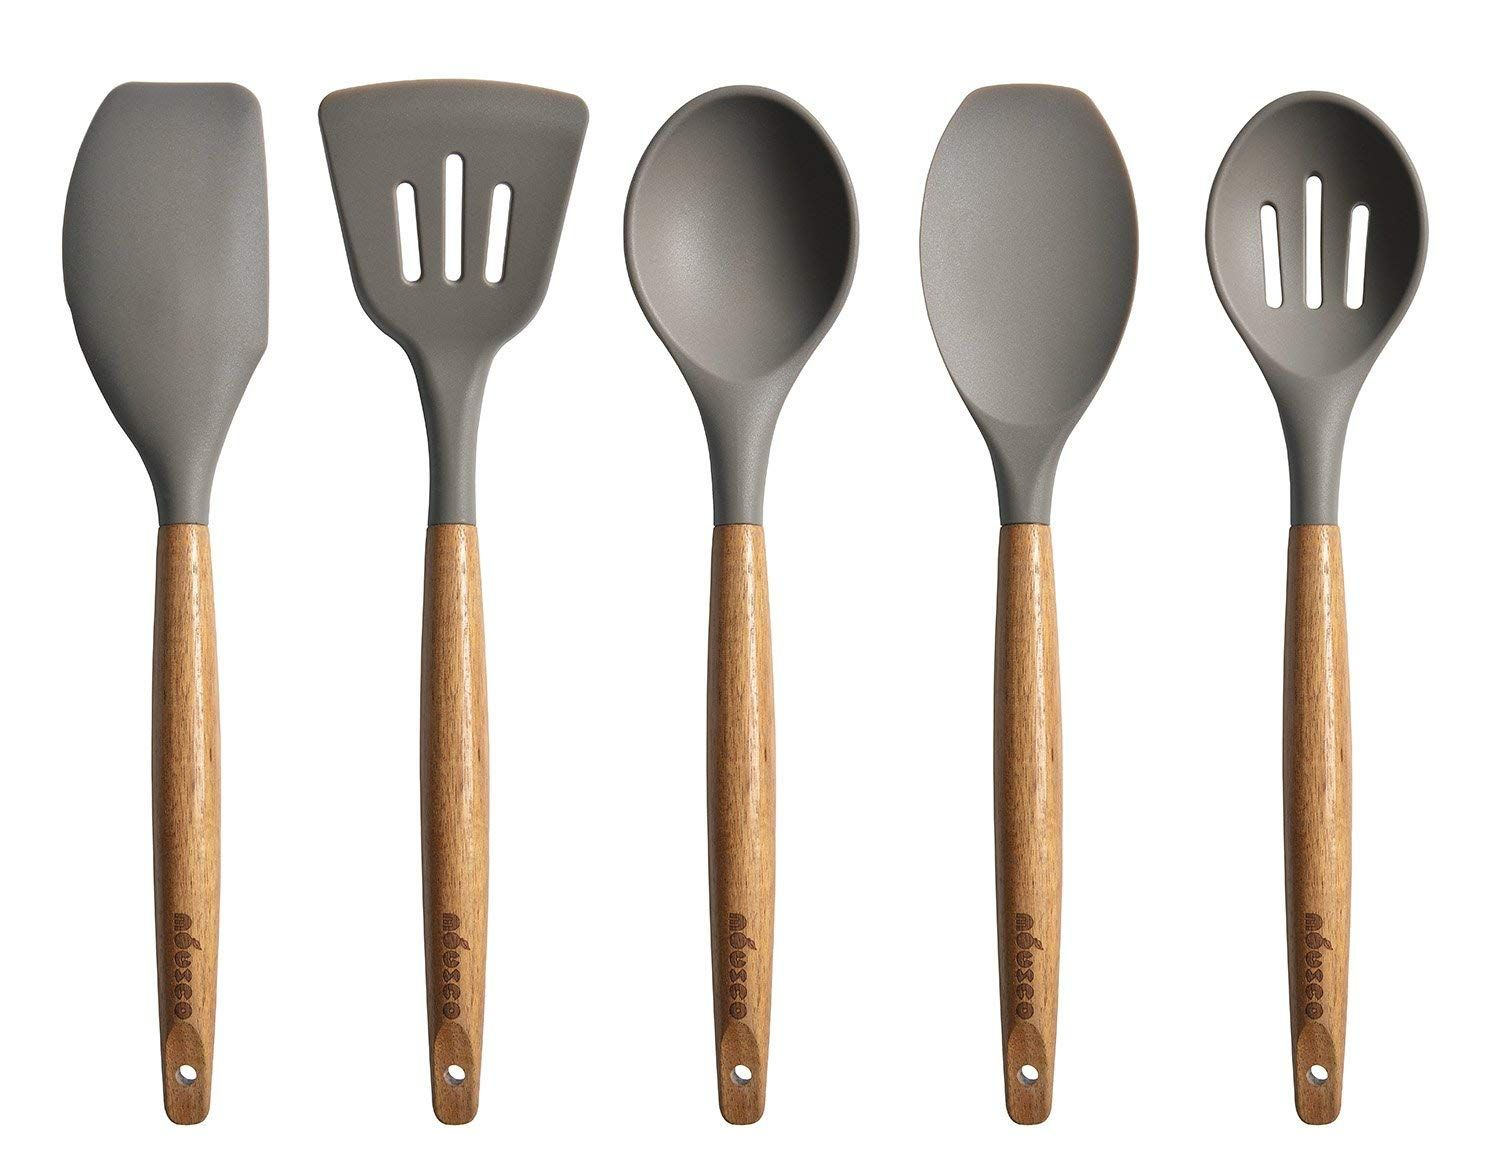 Colourful Five Piece Eco-friendly Bamboo Kitchen Utensil Set Long Flat Handles